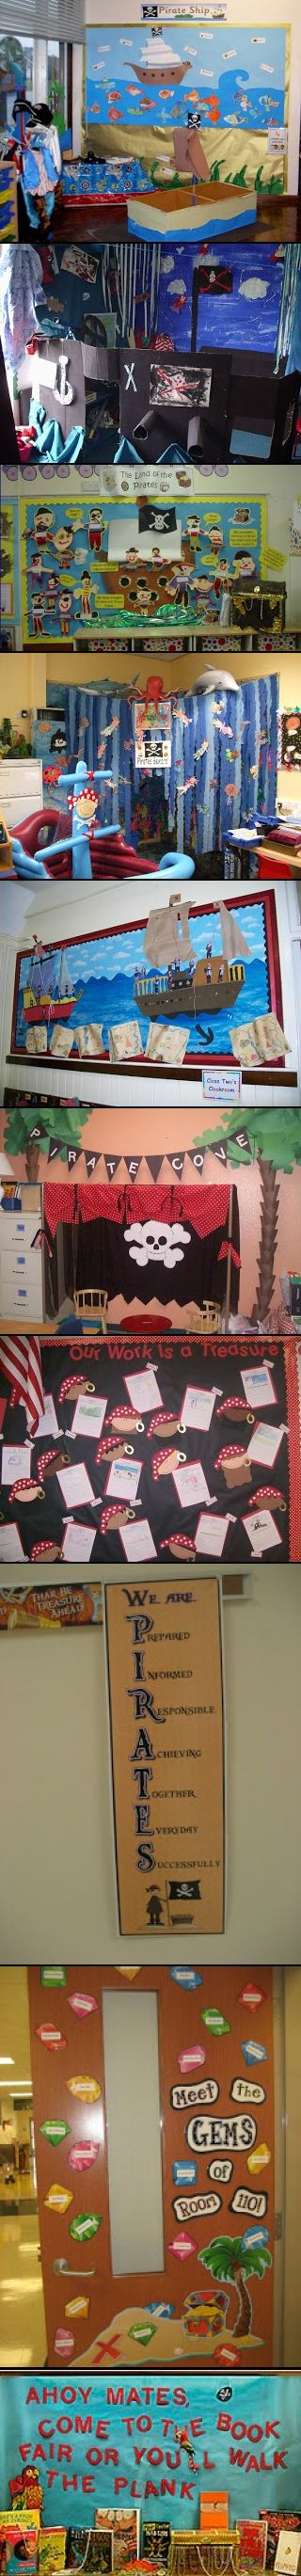 PIRATE THEME for you classroom.  Choose from a LONG list of themes from this site and start decorating before the new school year starts.